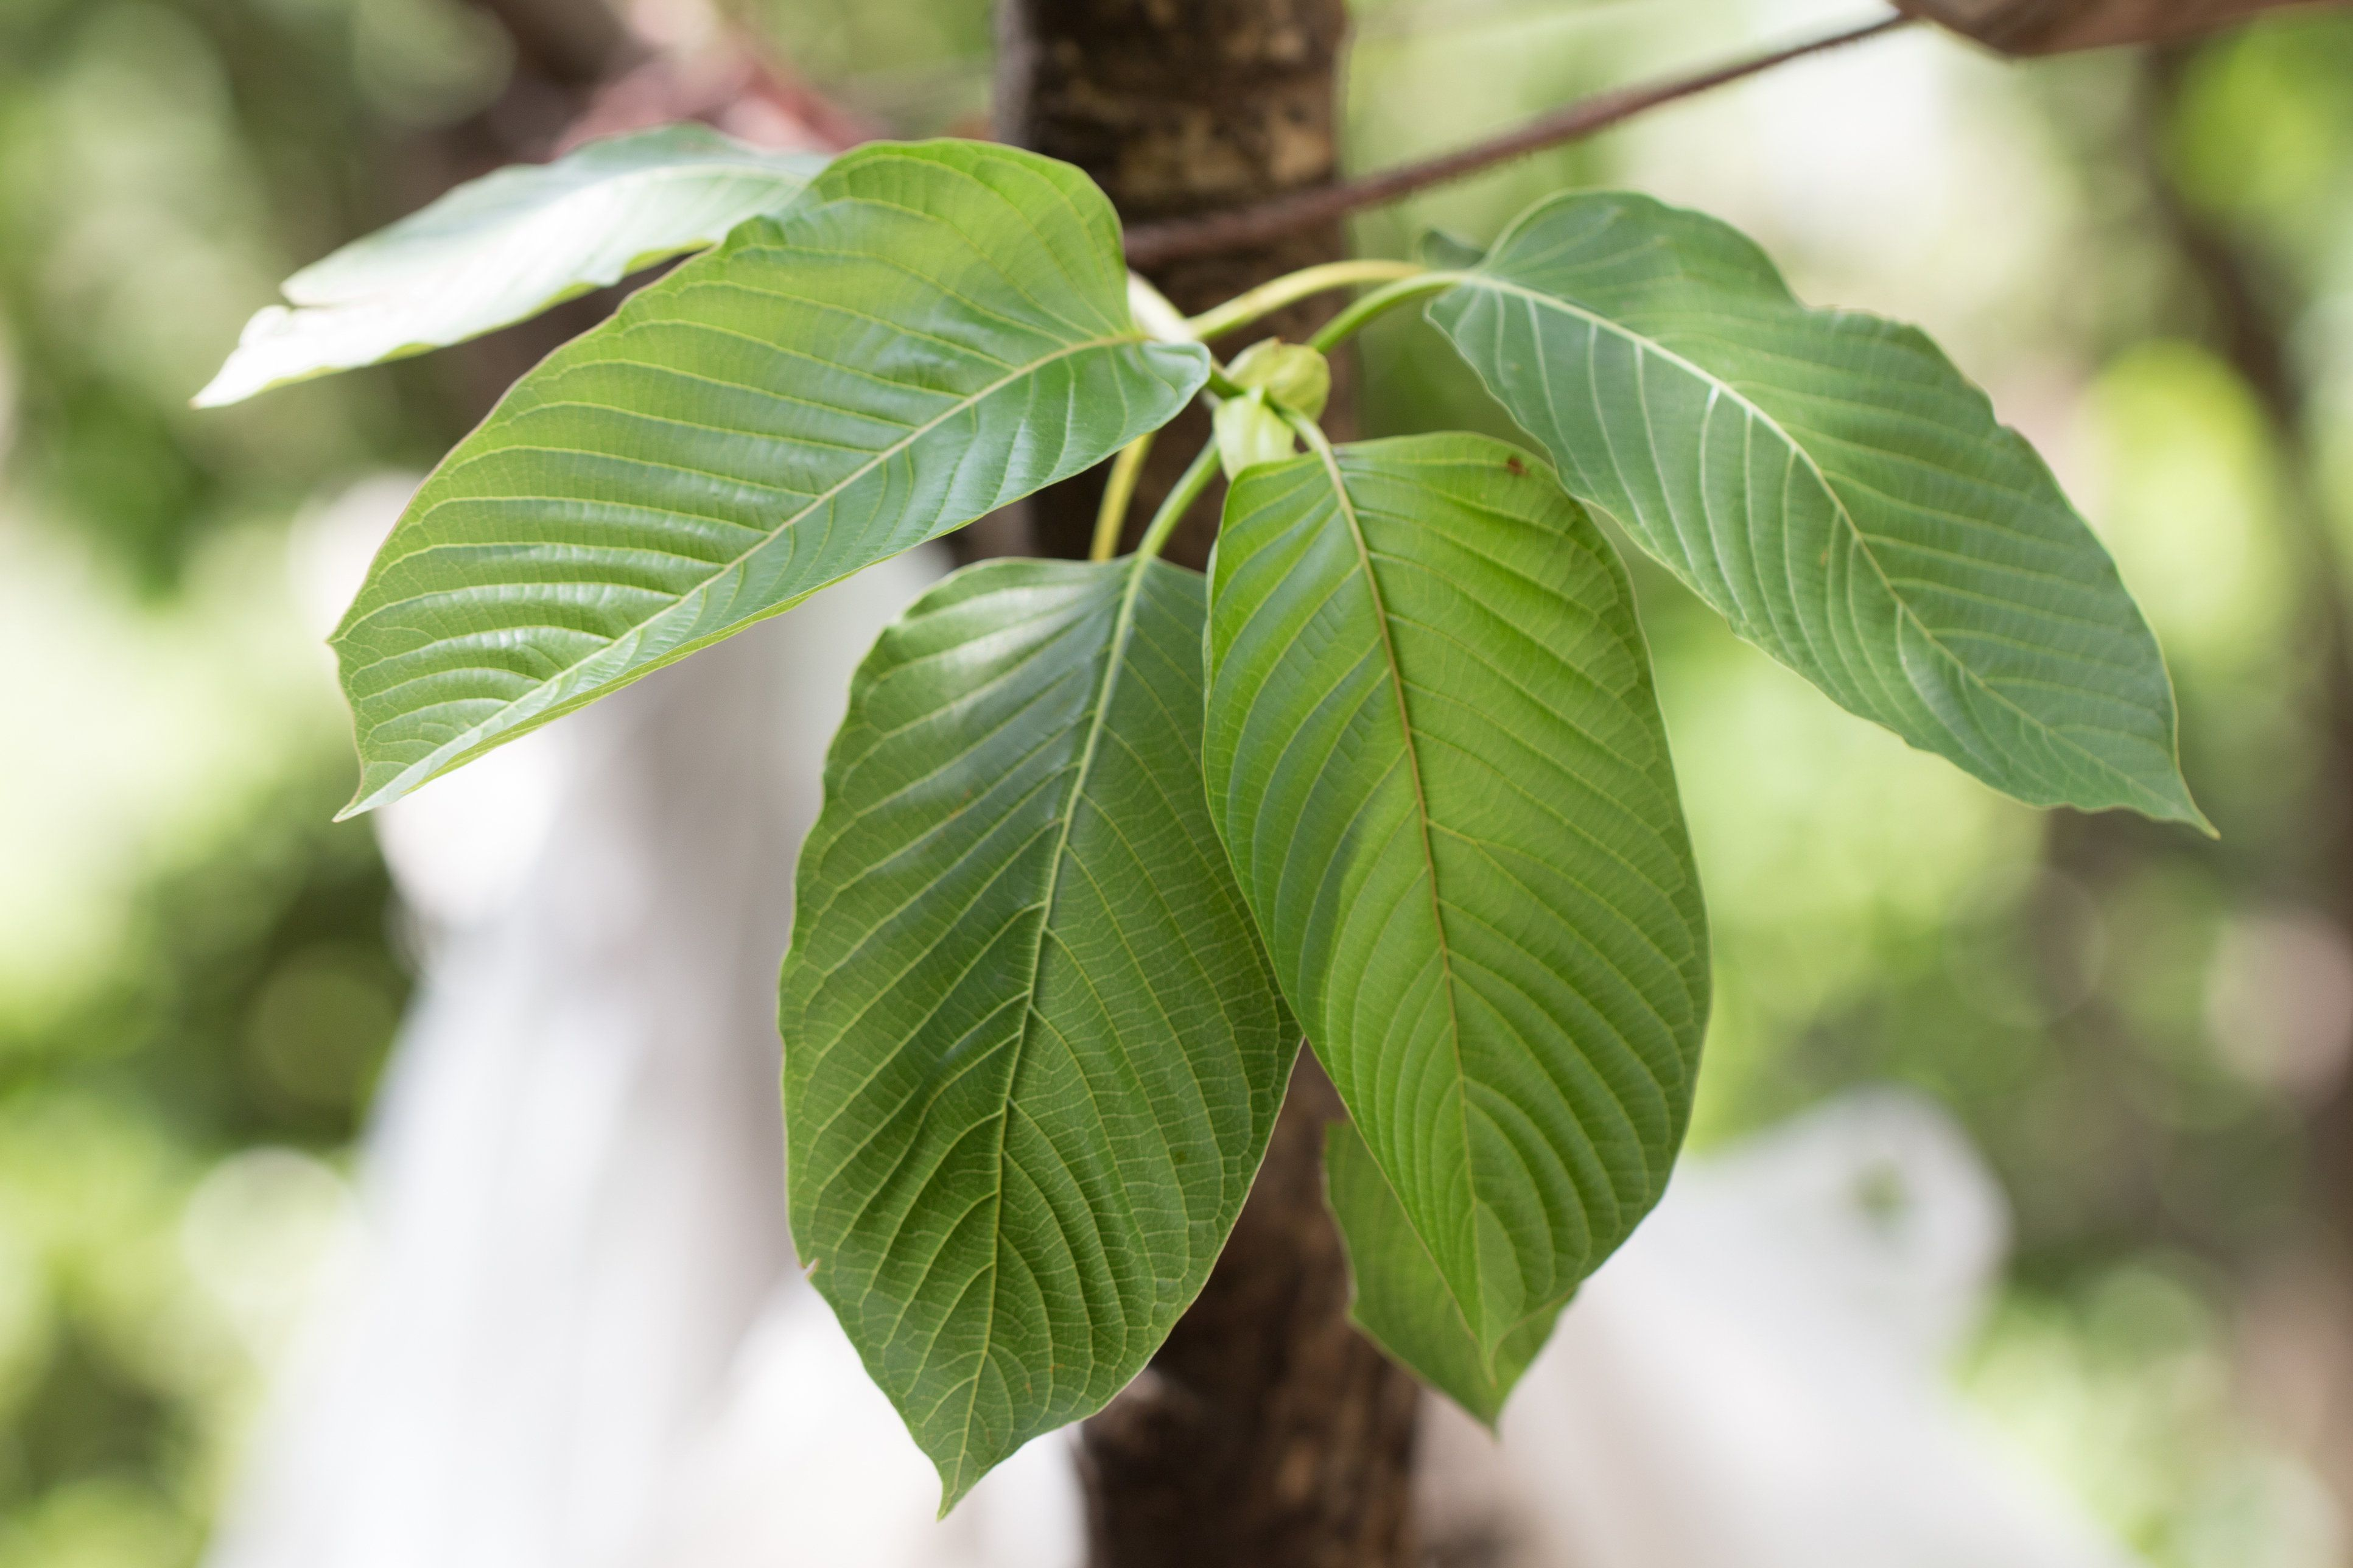 Leaves of theMitragyna speciosa tree are typically dried and crushed into a powder to make kratom.